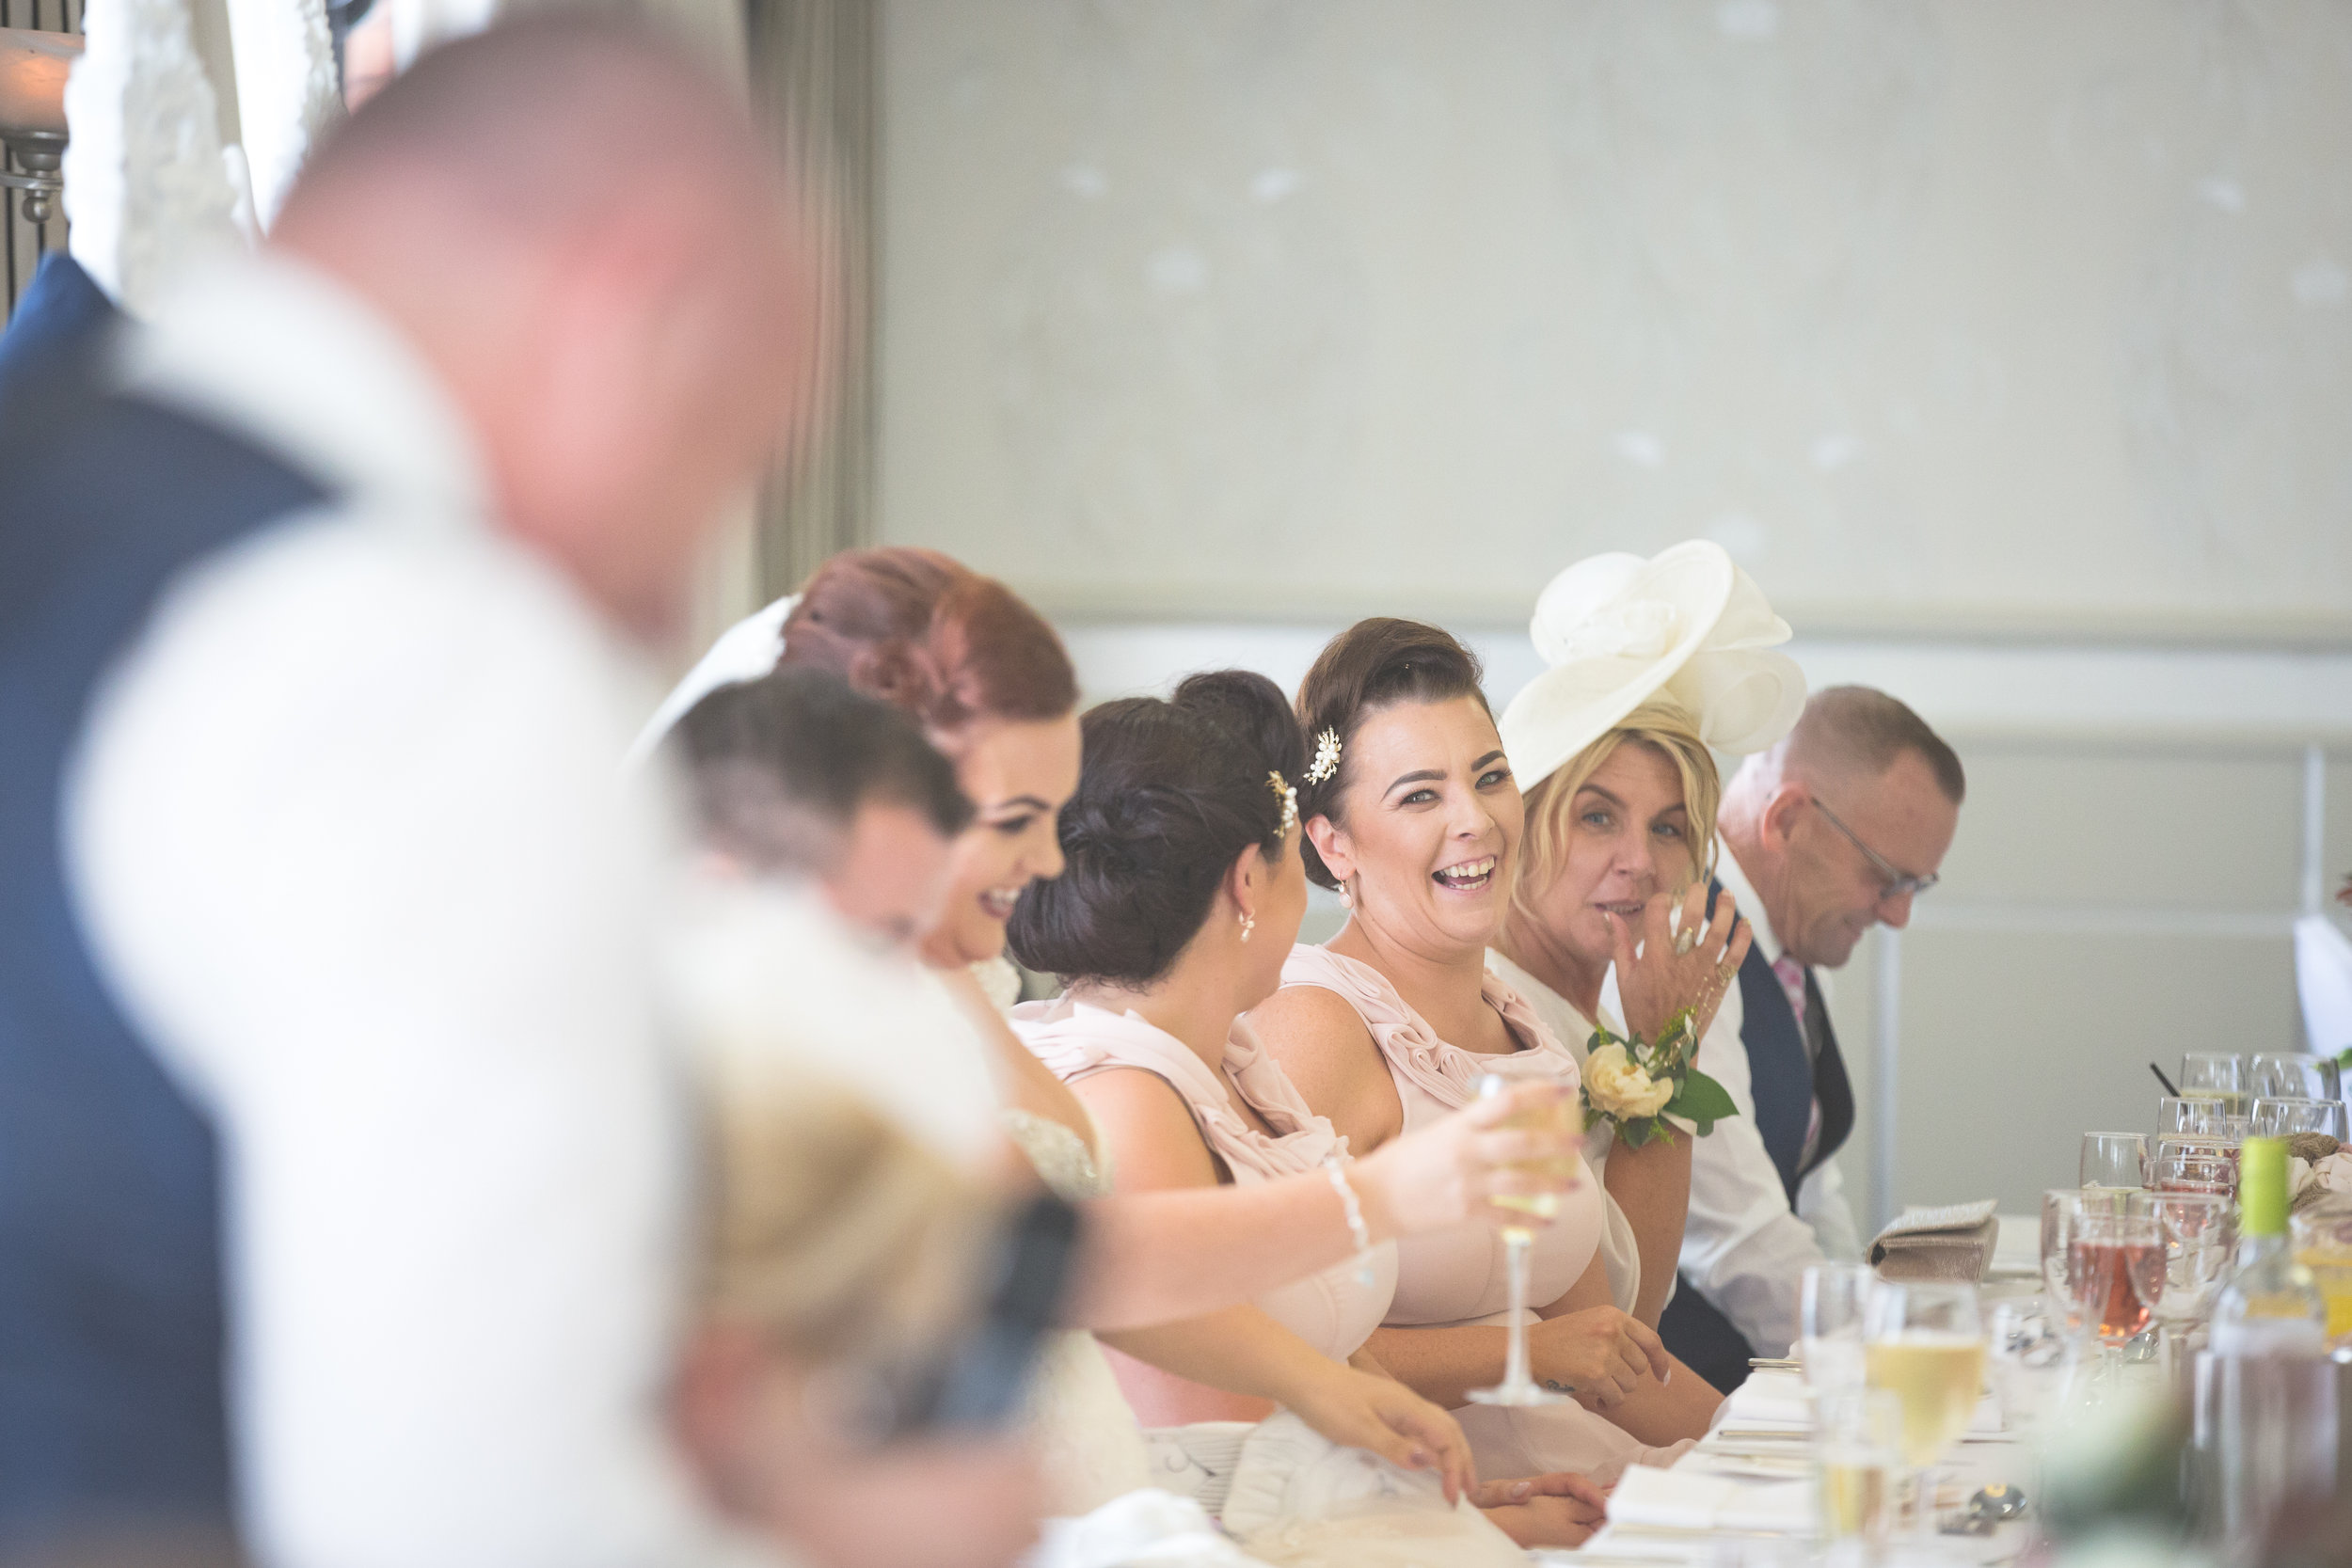 Antoinette & Stephen - Speeches | Brian McEwan Photography | Wedding Photographer Northern Ireland 31.jpg